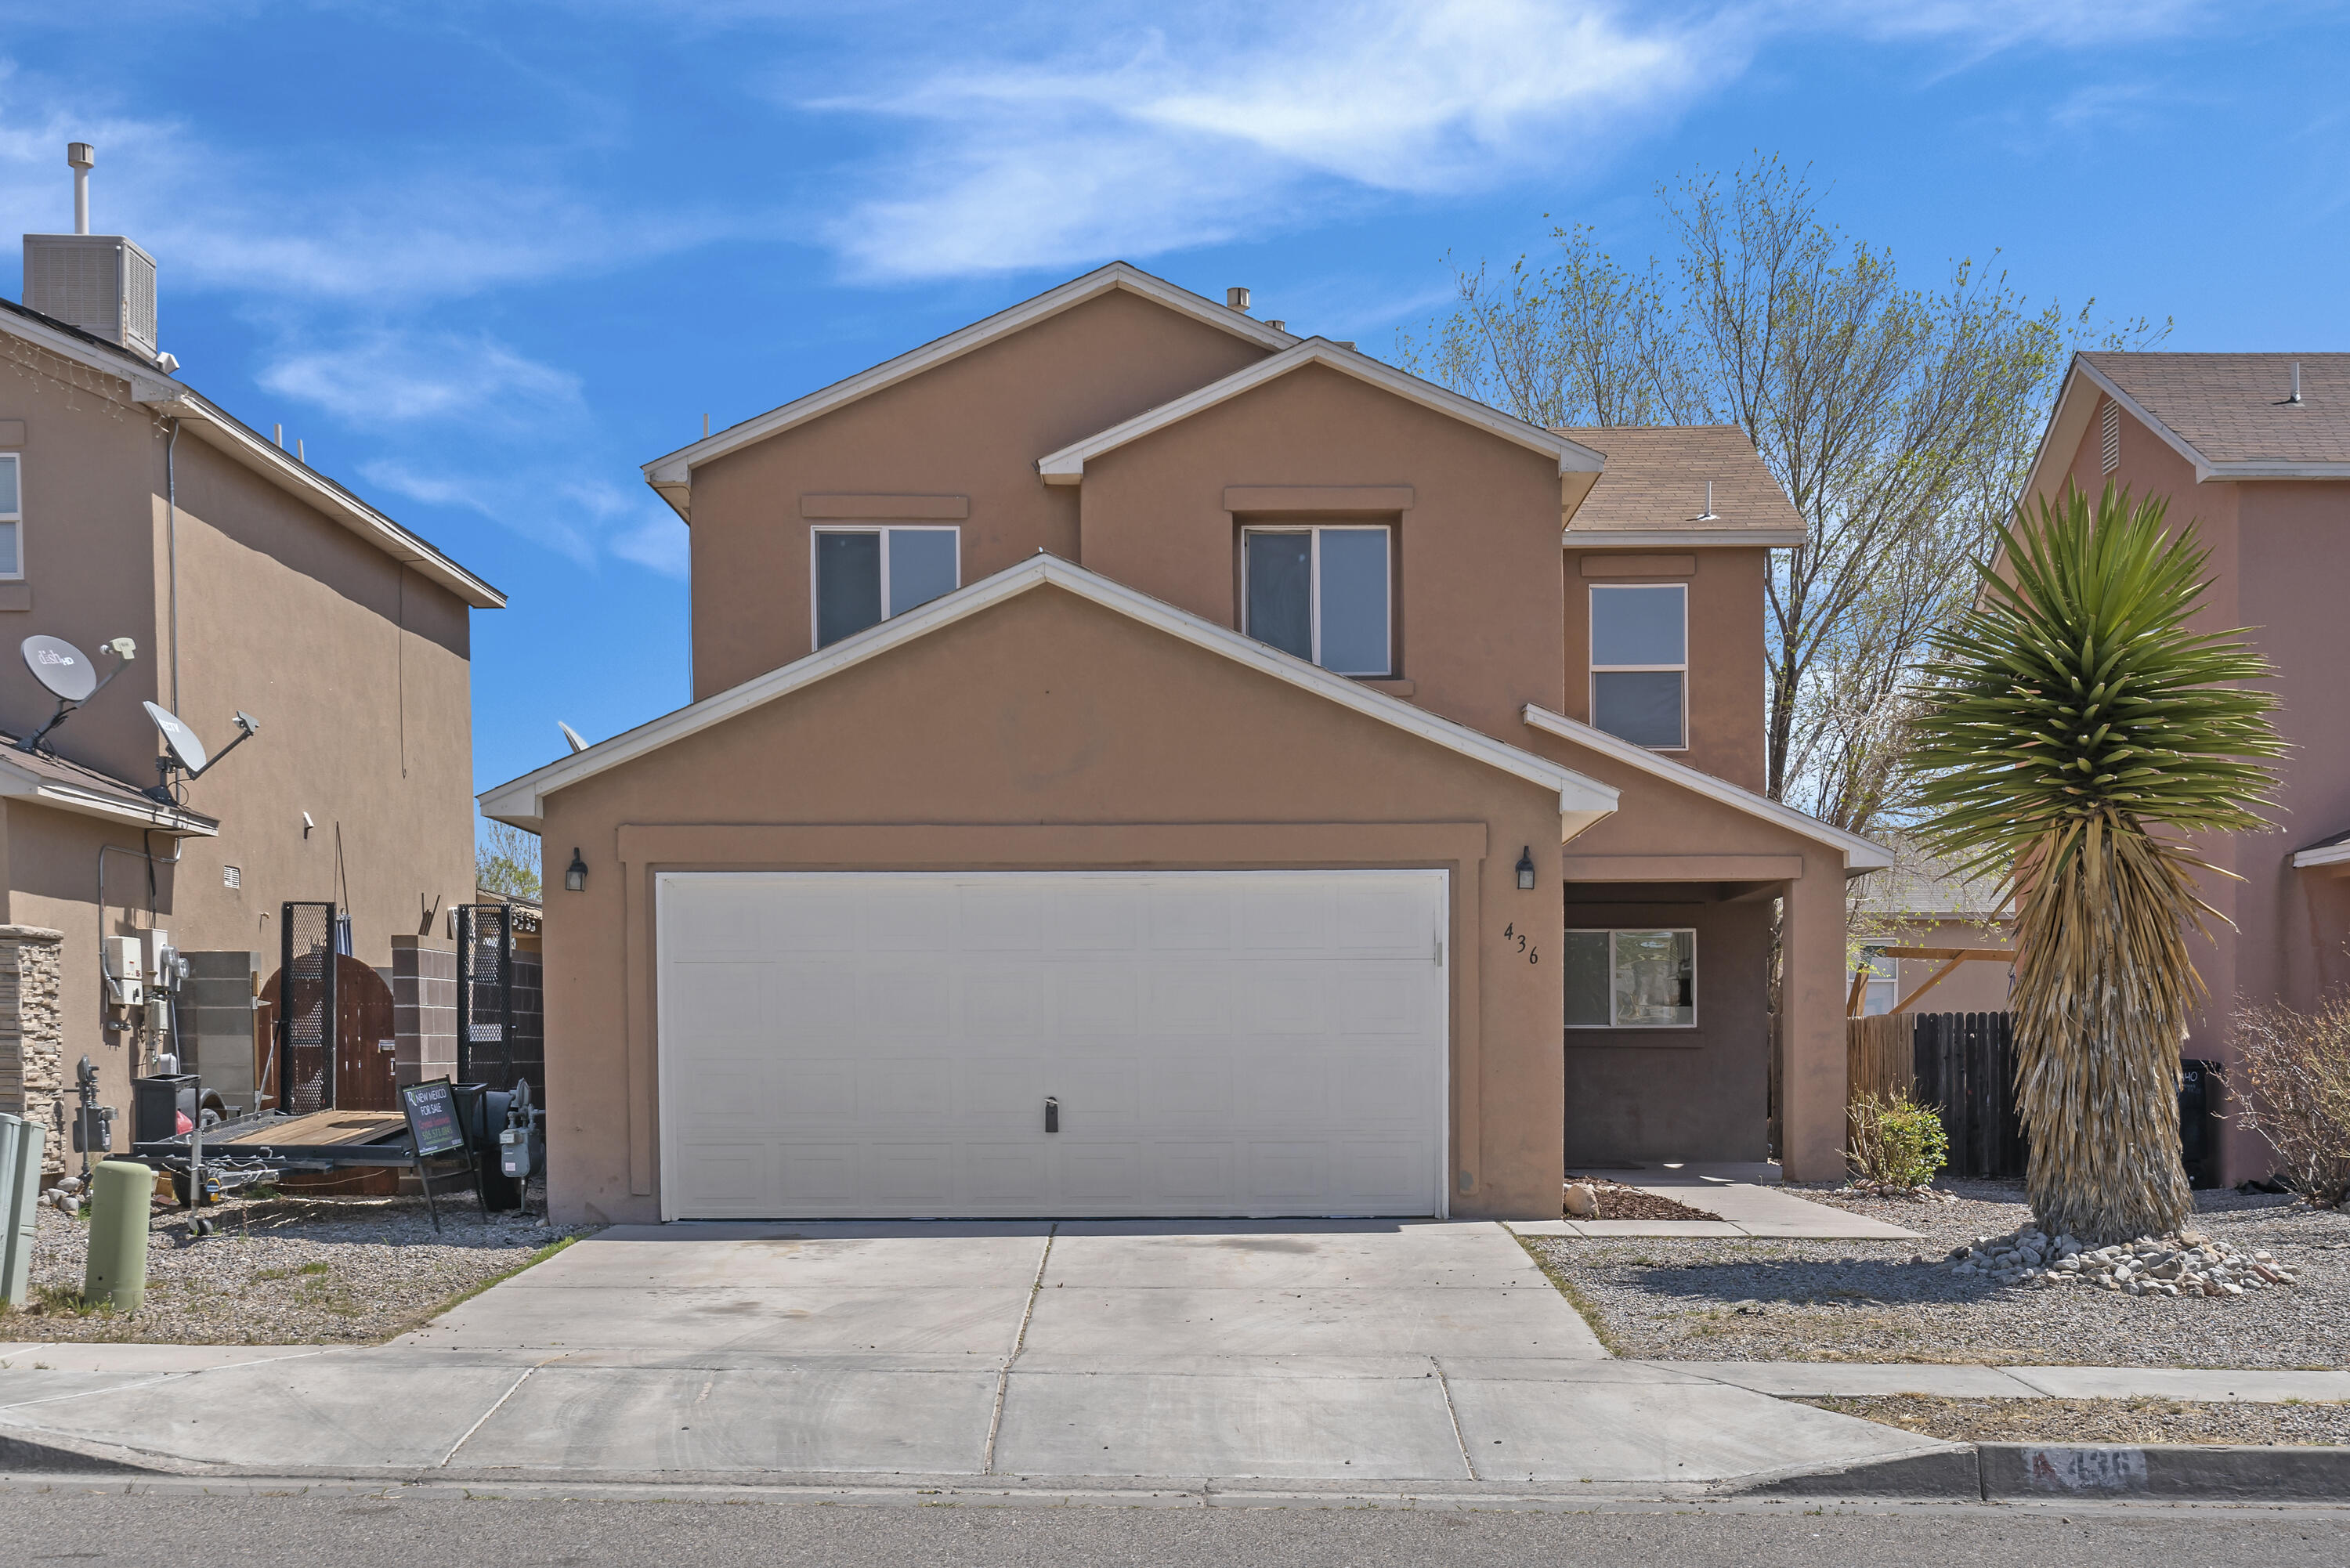 Great Price For A Home This Sq. Ft! Beautiful Like New 16 Yr. Old Kb Home .  Fresh paint. New flooring. Open Floor Plan W/ Inviting spacious Kitchen, plenty of counter and cabinets space. 3 Bedroom 2.5 Bath 2 Car Garage 2/ Living Areas + Loft. Landscaped Front And Back